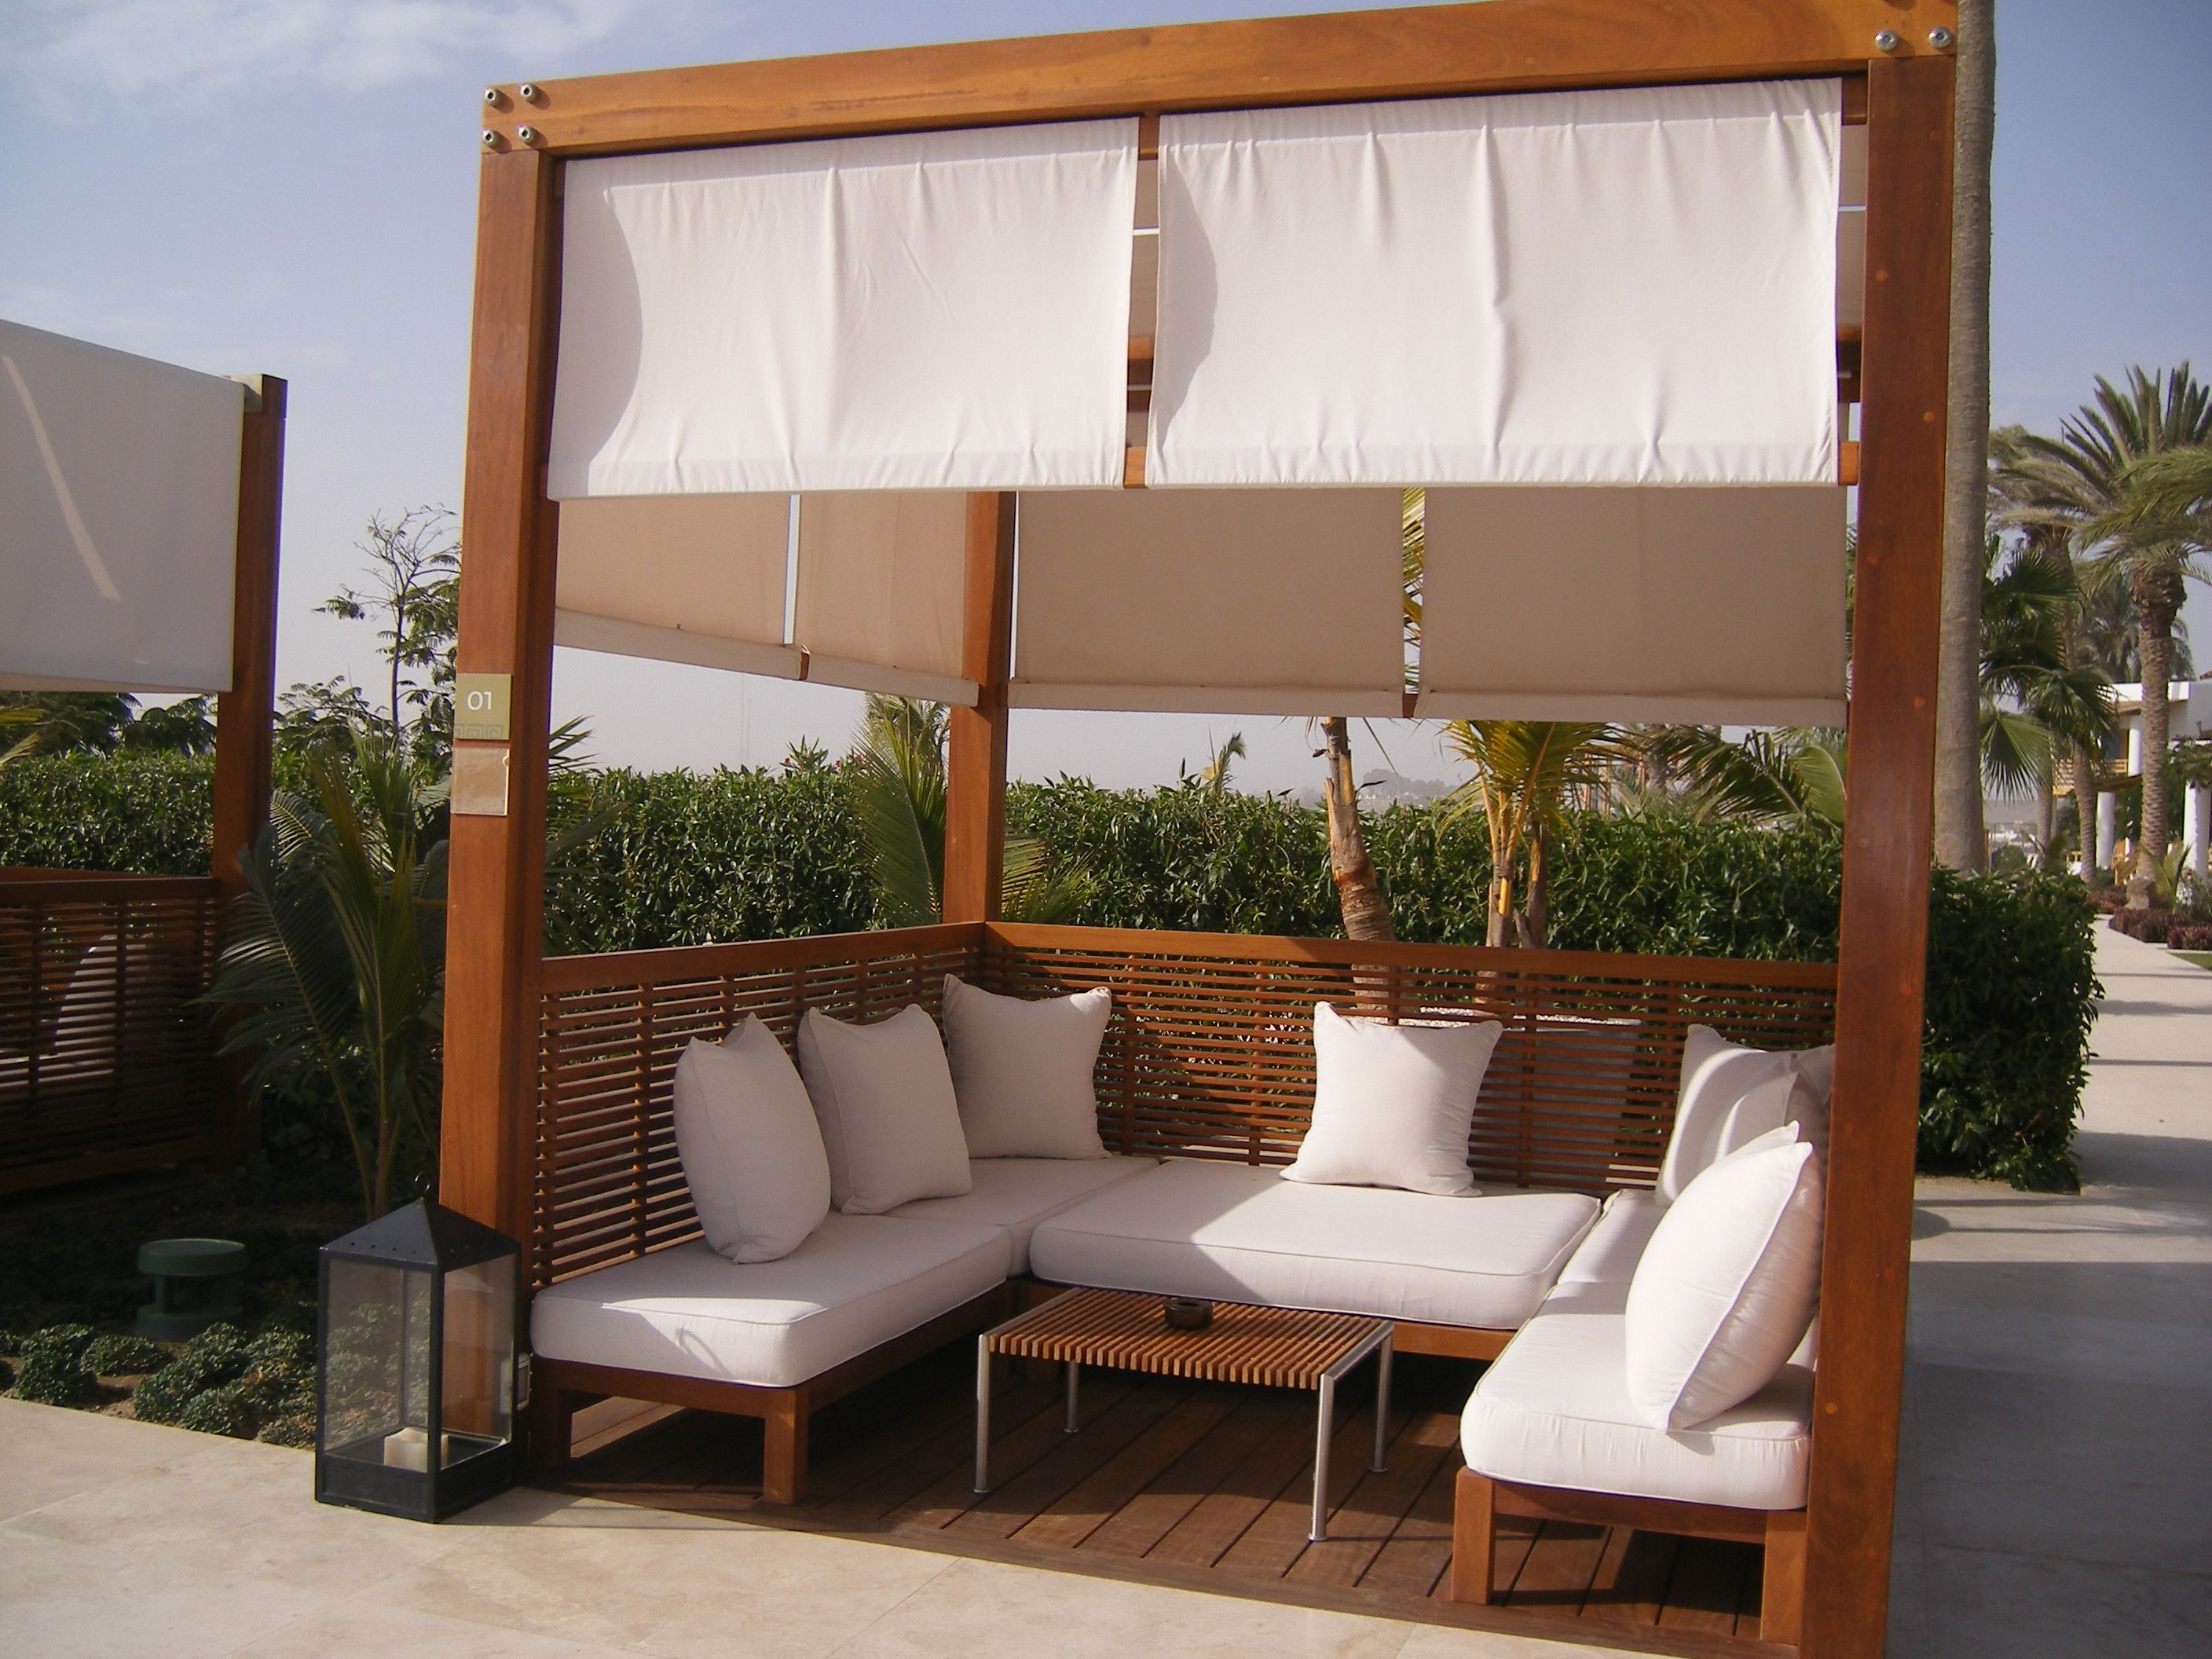 Pool Cabana Tent Google Search Tulum Hotels Outdoor